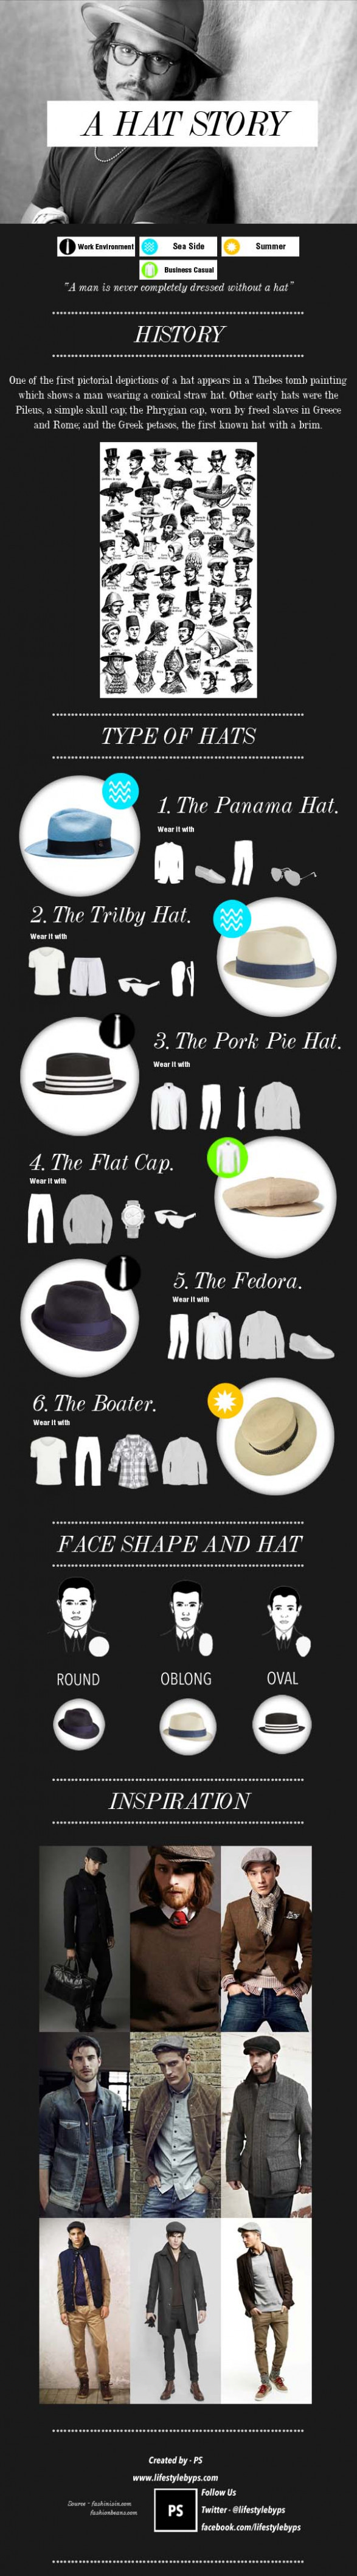 A Hat Story - Infographic